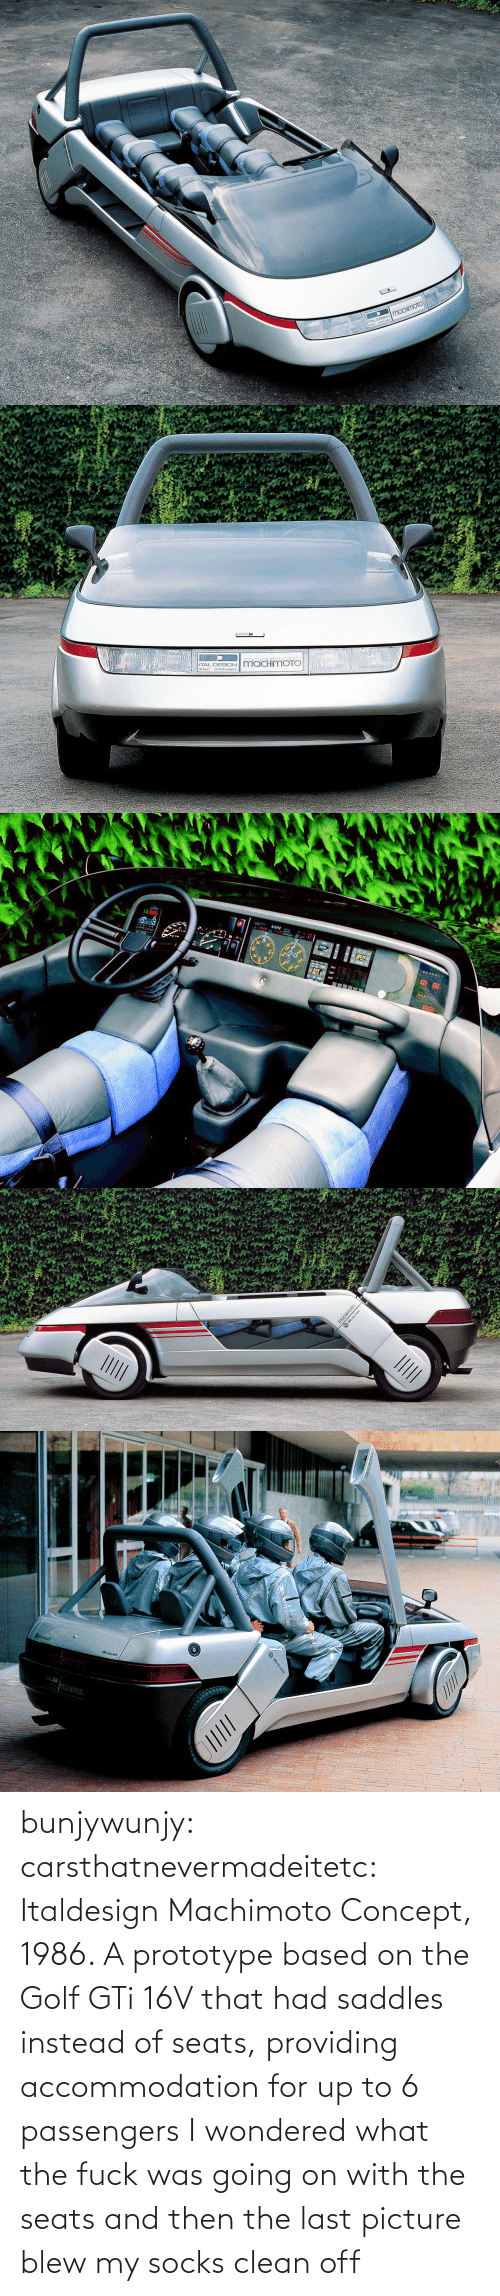 saddles: bunjywunjy:  carsthatnevermadeitetc:  Italdesign Machimoto Concept, 1986. A prototype based on the Golf GTi 16V that had saddles instead of seats, providing accommodation for up to 6 passengers   I wondered what the fuck was going on with the seats and then the last picture blew my socks clean off